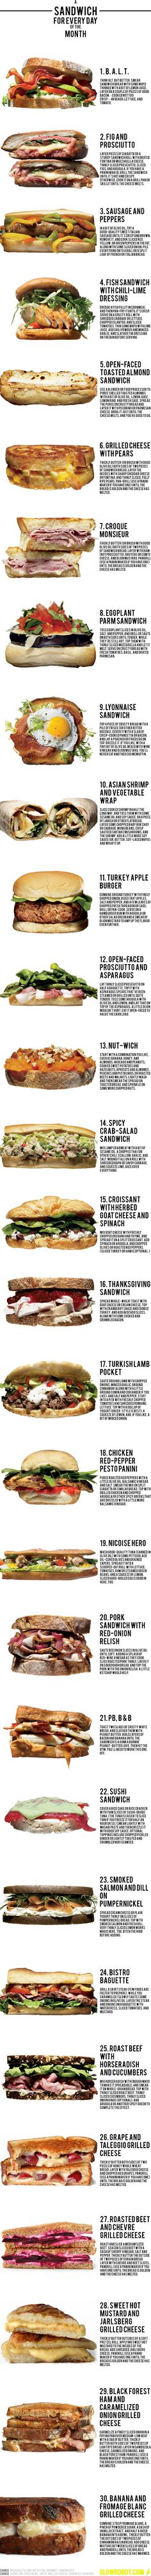 A New Sandwich For Every Day Of The Month ~ Sandwich Recipes